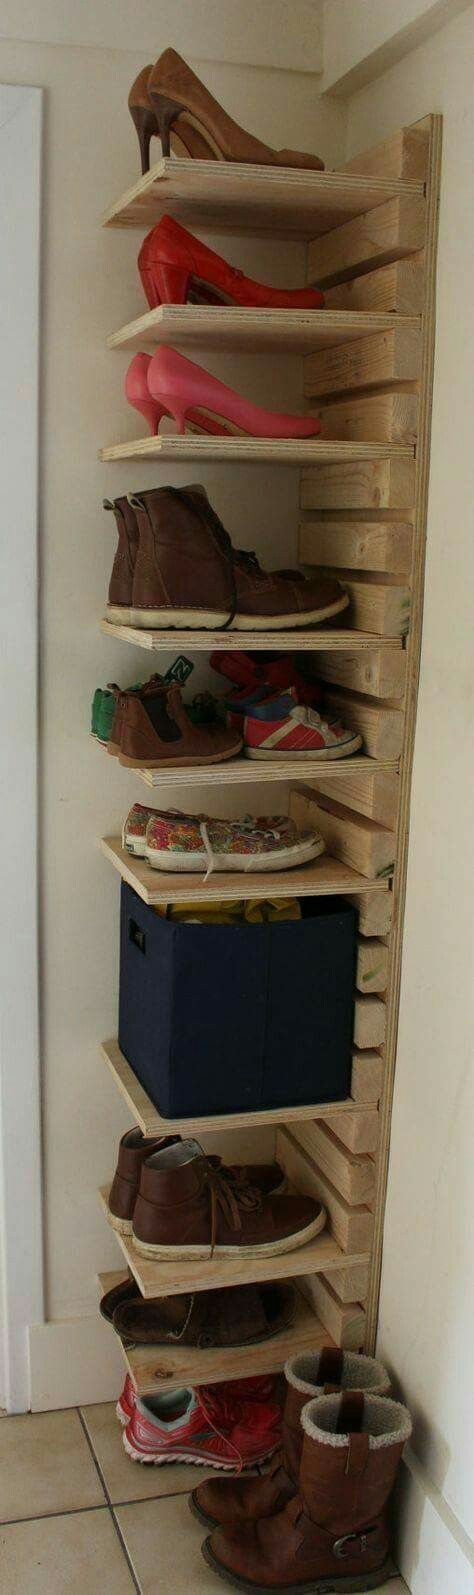 Got Some S Reclaimed Wood Great Vertical Shoe Storage Idea Or Books Bags Toyys